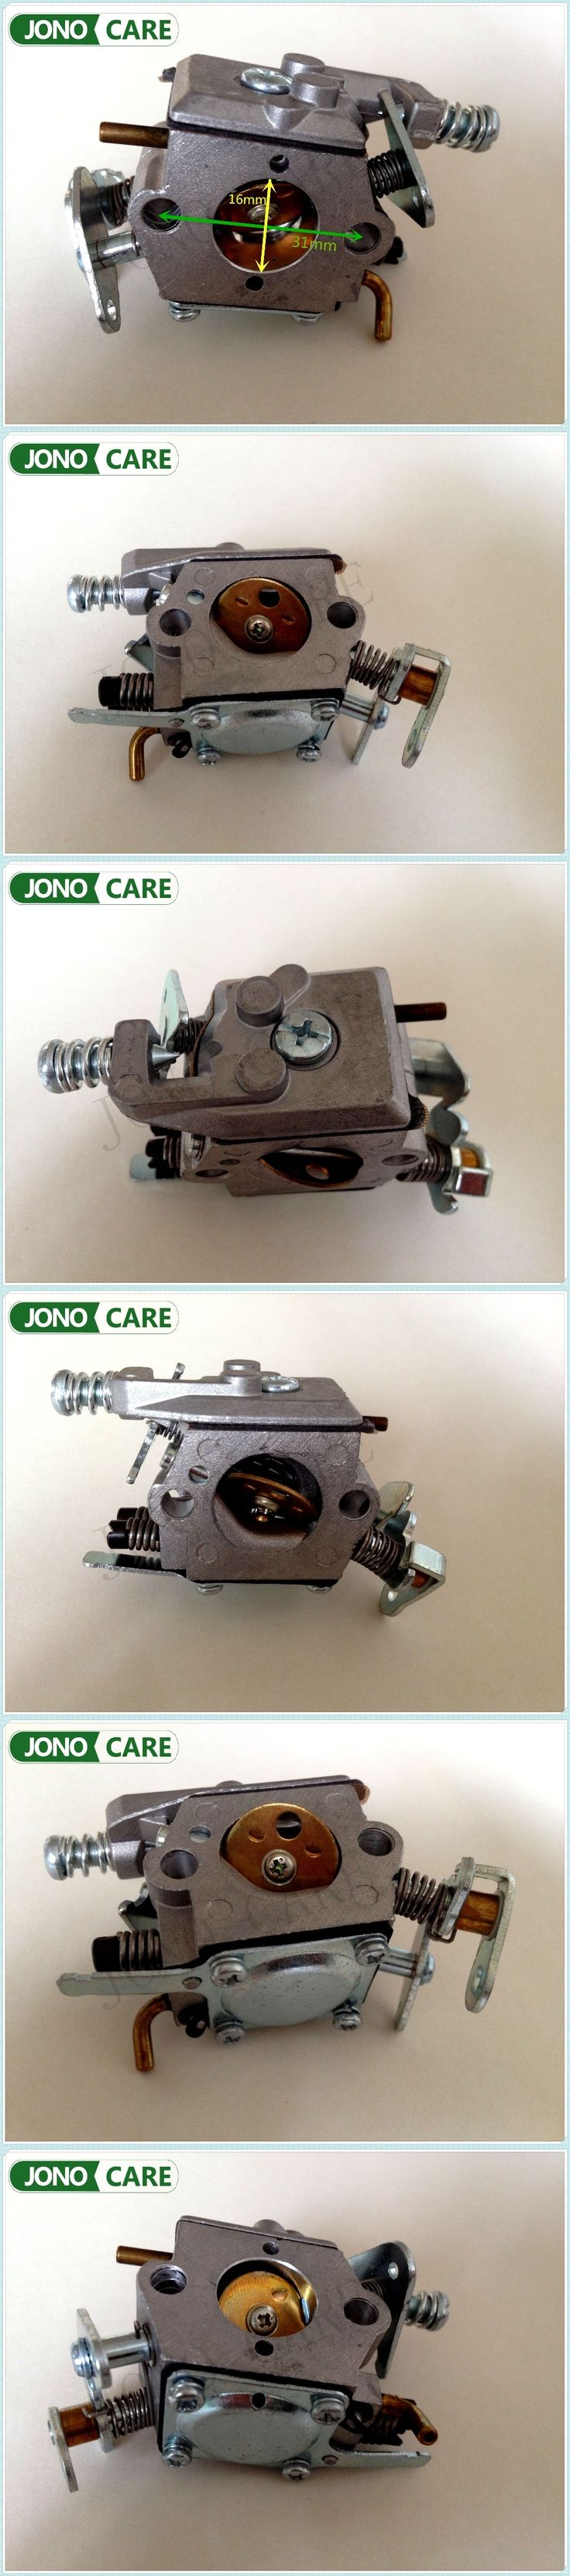 High Quality Carburetor Carb Carby For Husqvarna Partner 350 351 370 371 420 Chainsaw Poulan Spare Parts Walbro 33-29